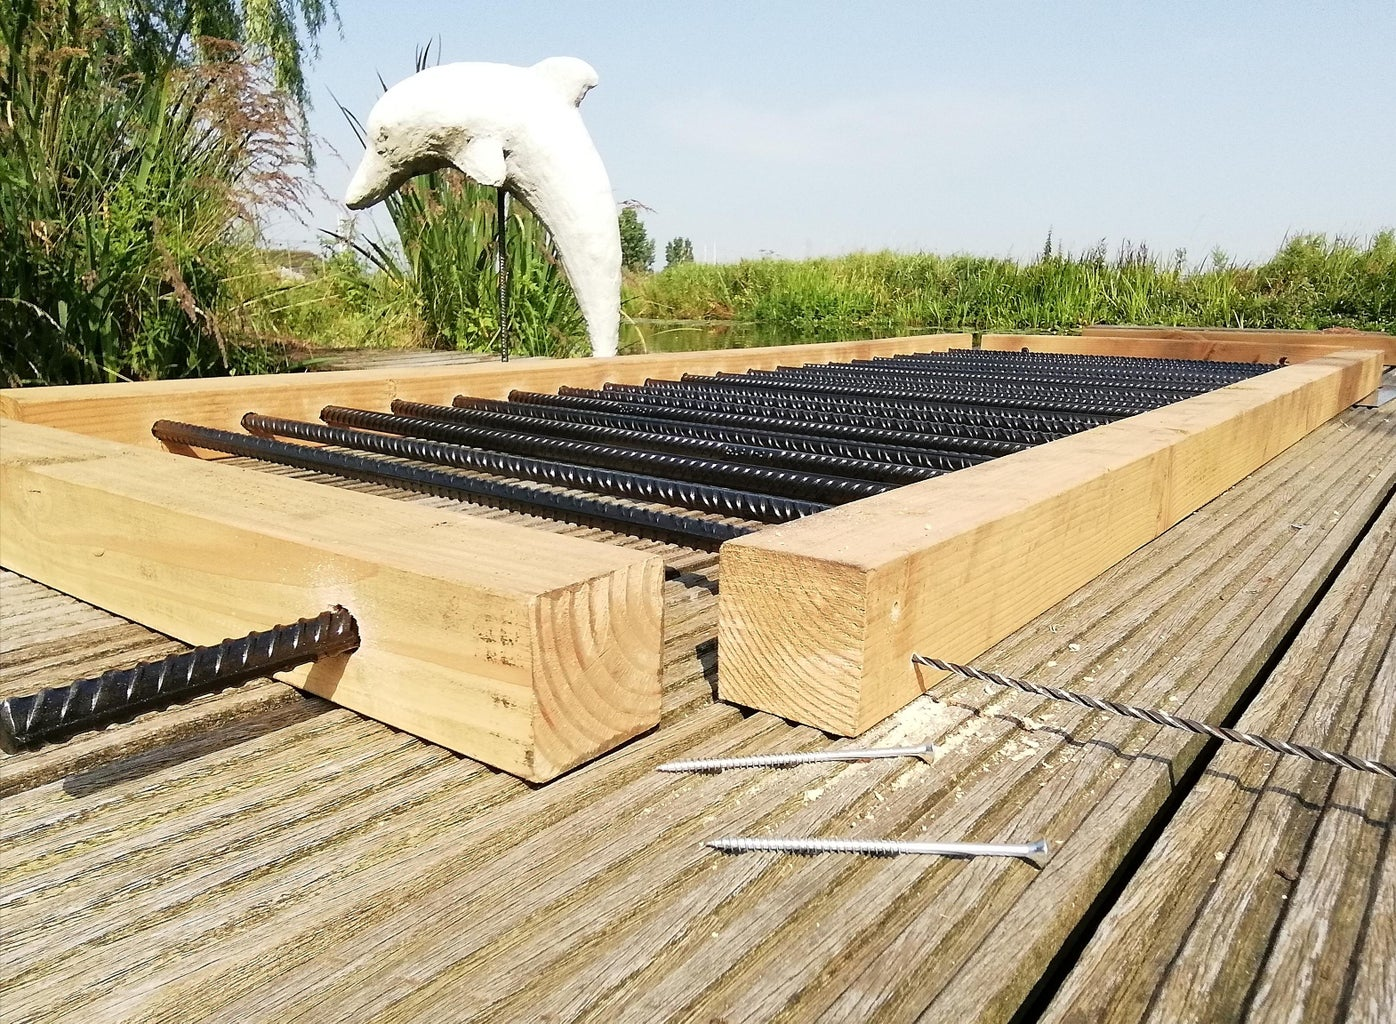 Drill Holes, Make Sure the Fence Is Square and Screw the Parts Together